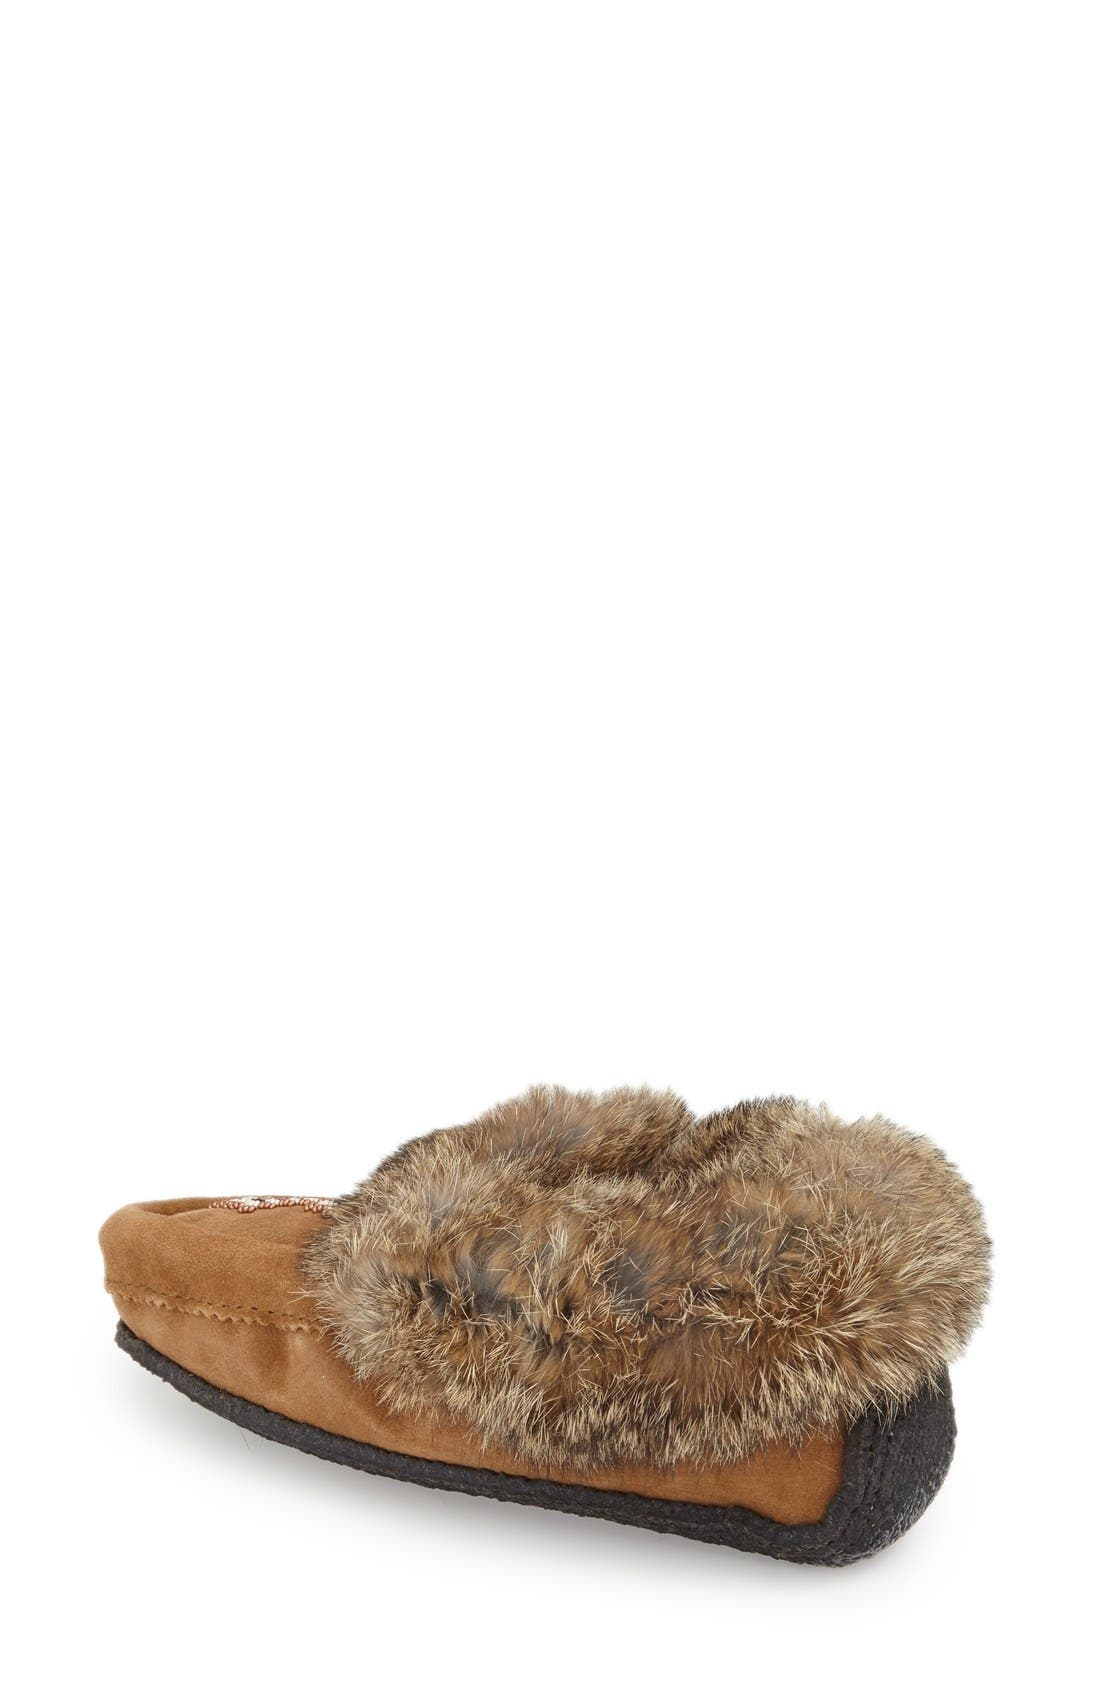 Genuine Shearling and Rabbit Fur Mukluk Slipper,                             Alternate thumbnail 2, color,                             OAK RABBIT FUR SUEDE